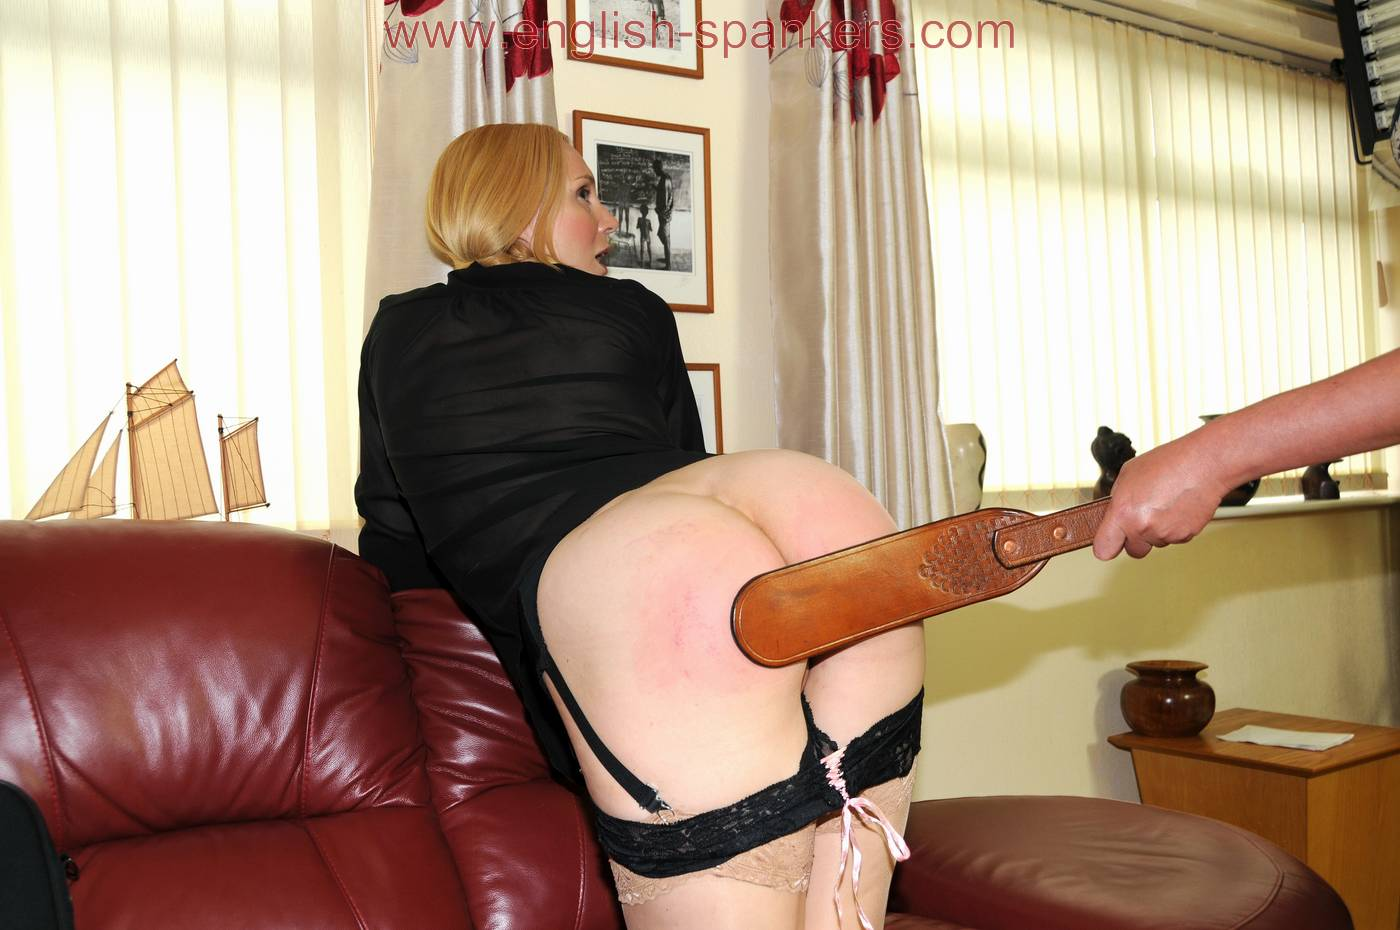 Swinger couple website swinger stories